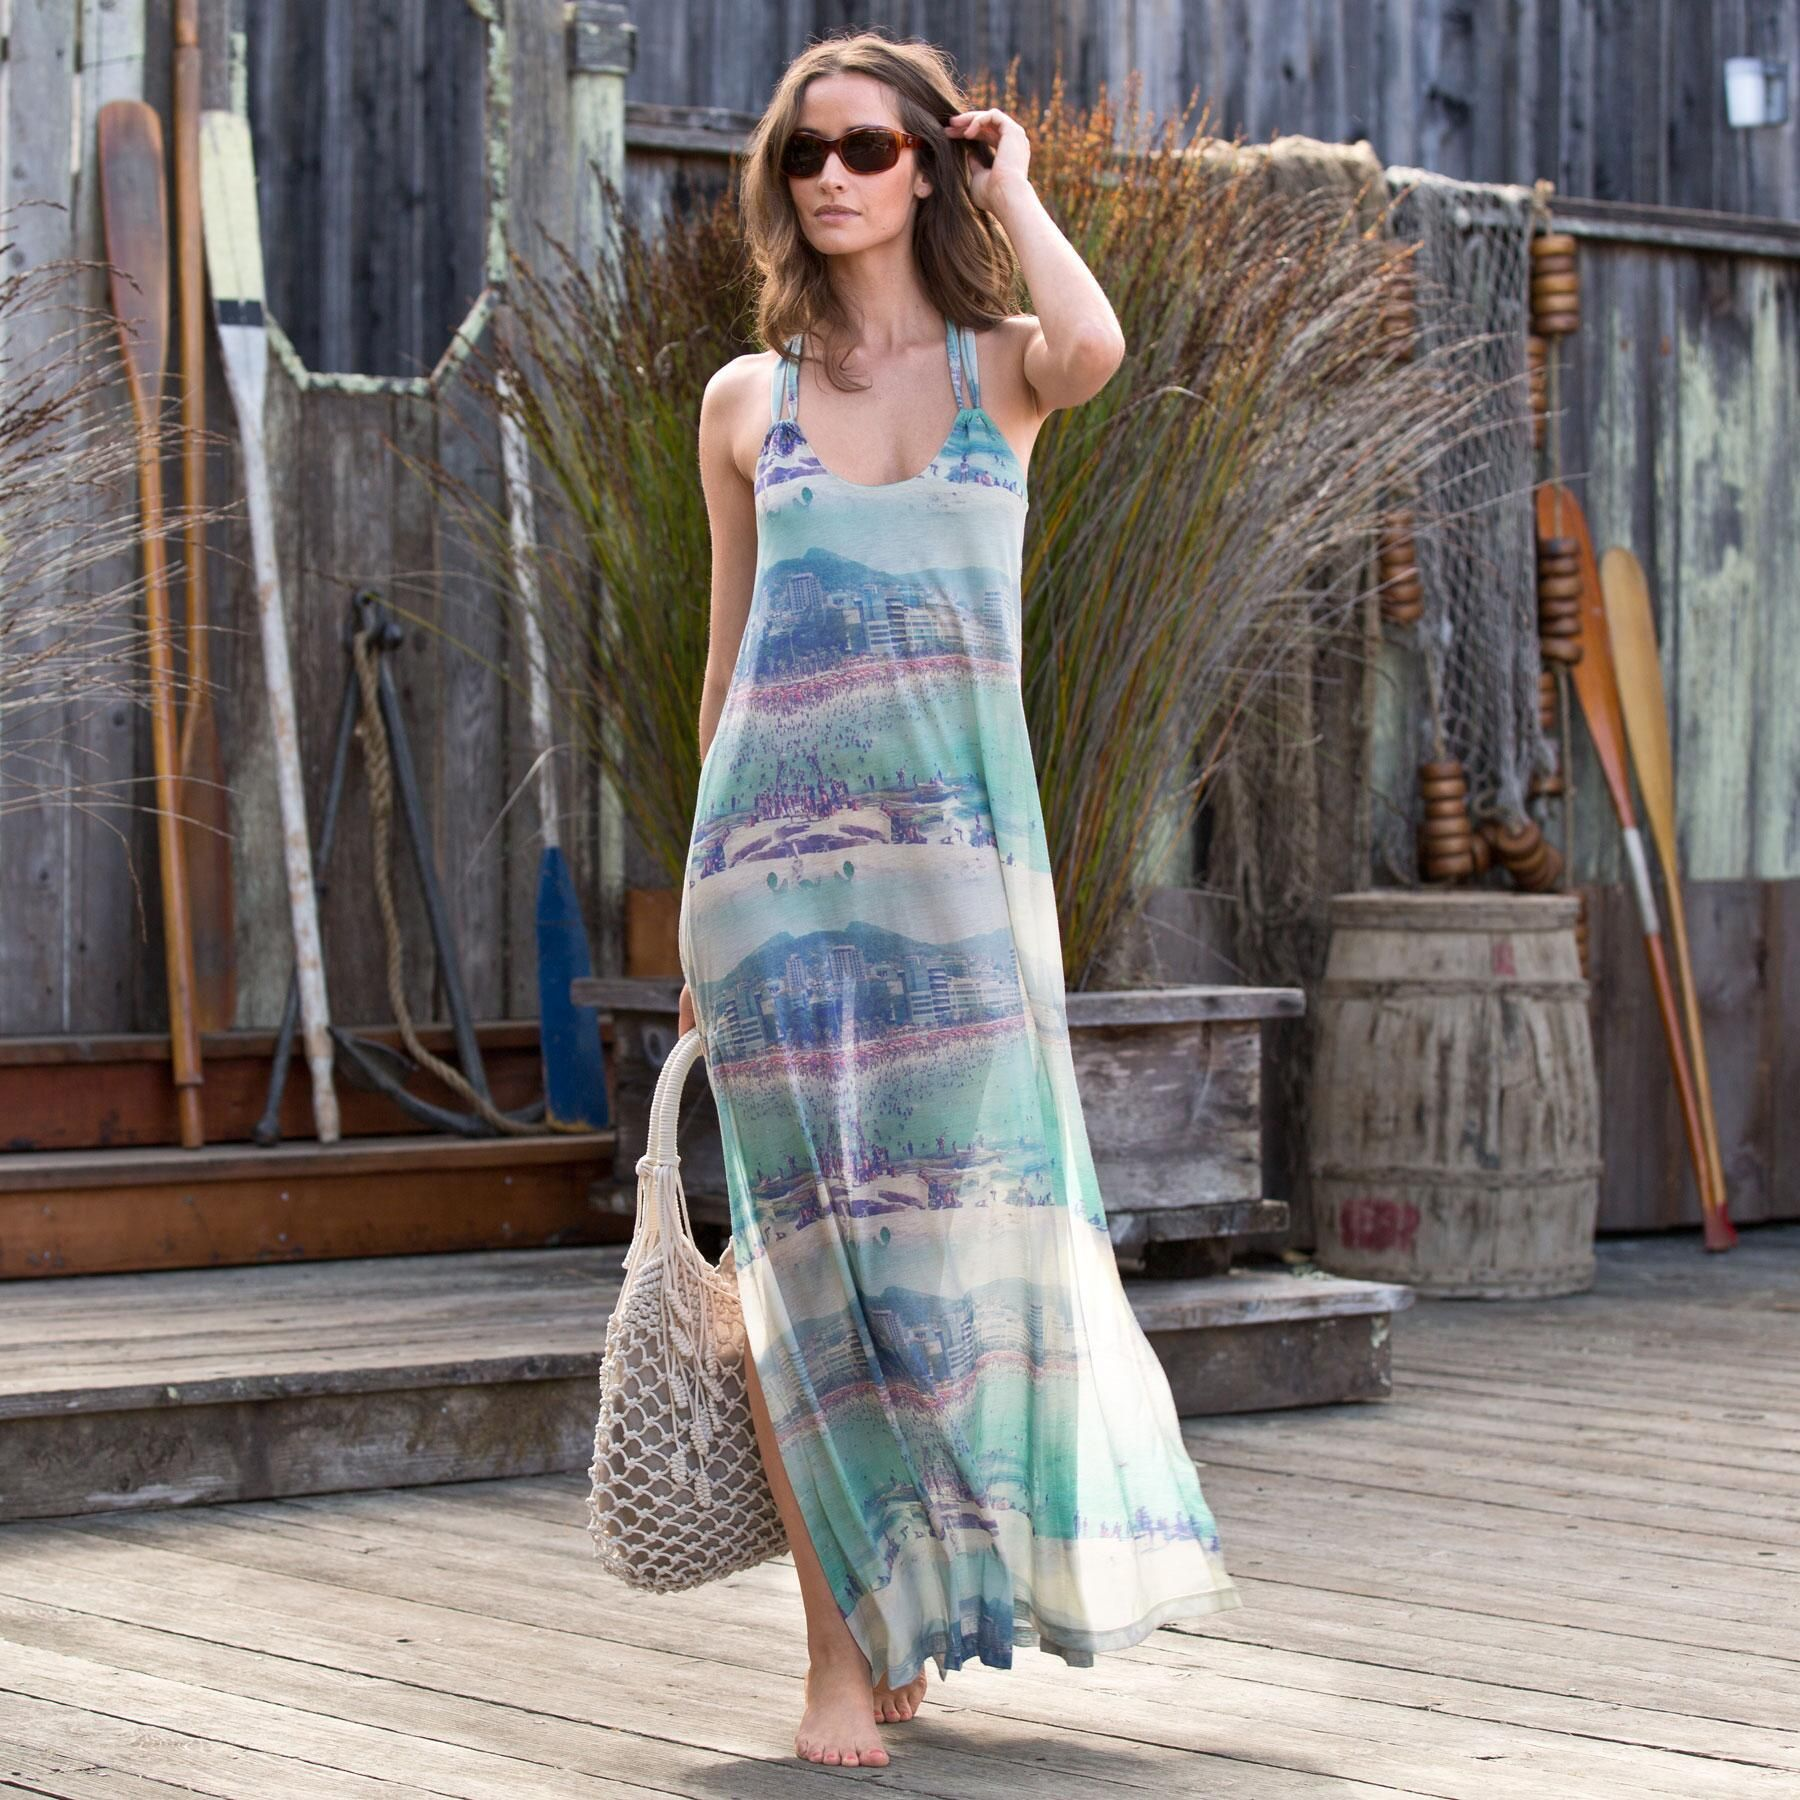 "RIO BEACHSCAPE MAXI DRESS -- Scenes of beachside Rio de Janeiro are printed like surreal stripes on a striking sweep of dress, suspended from straps that flow into a cut-out racer back. Wear it for a stroll by the sea or a supper under the stars. Polyester. Hand wash. Made in Brazil, reknowned for unbeatable beachwear. Sizes S (4 to 6), M (8 to 10), L (12 to 14), XL (16). 58-1/4""L."